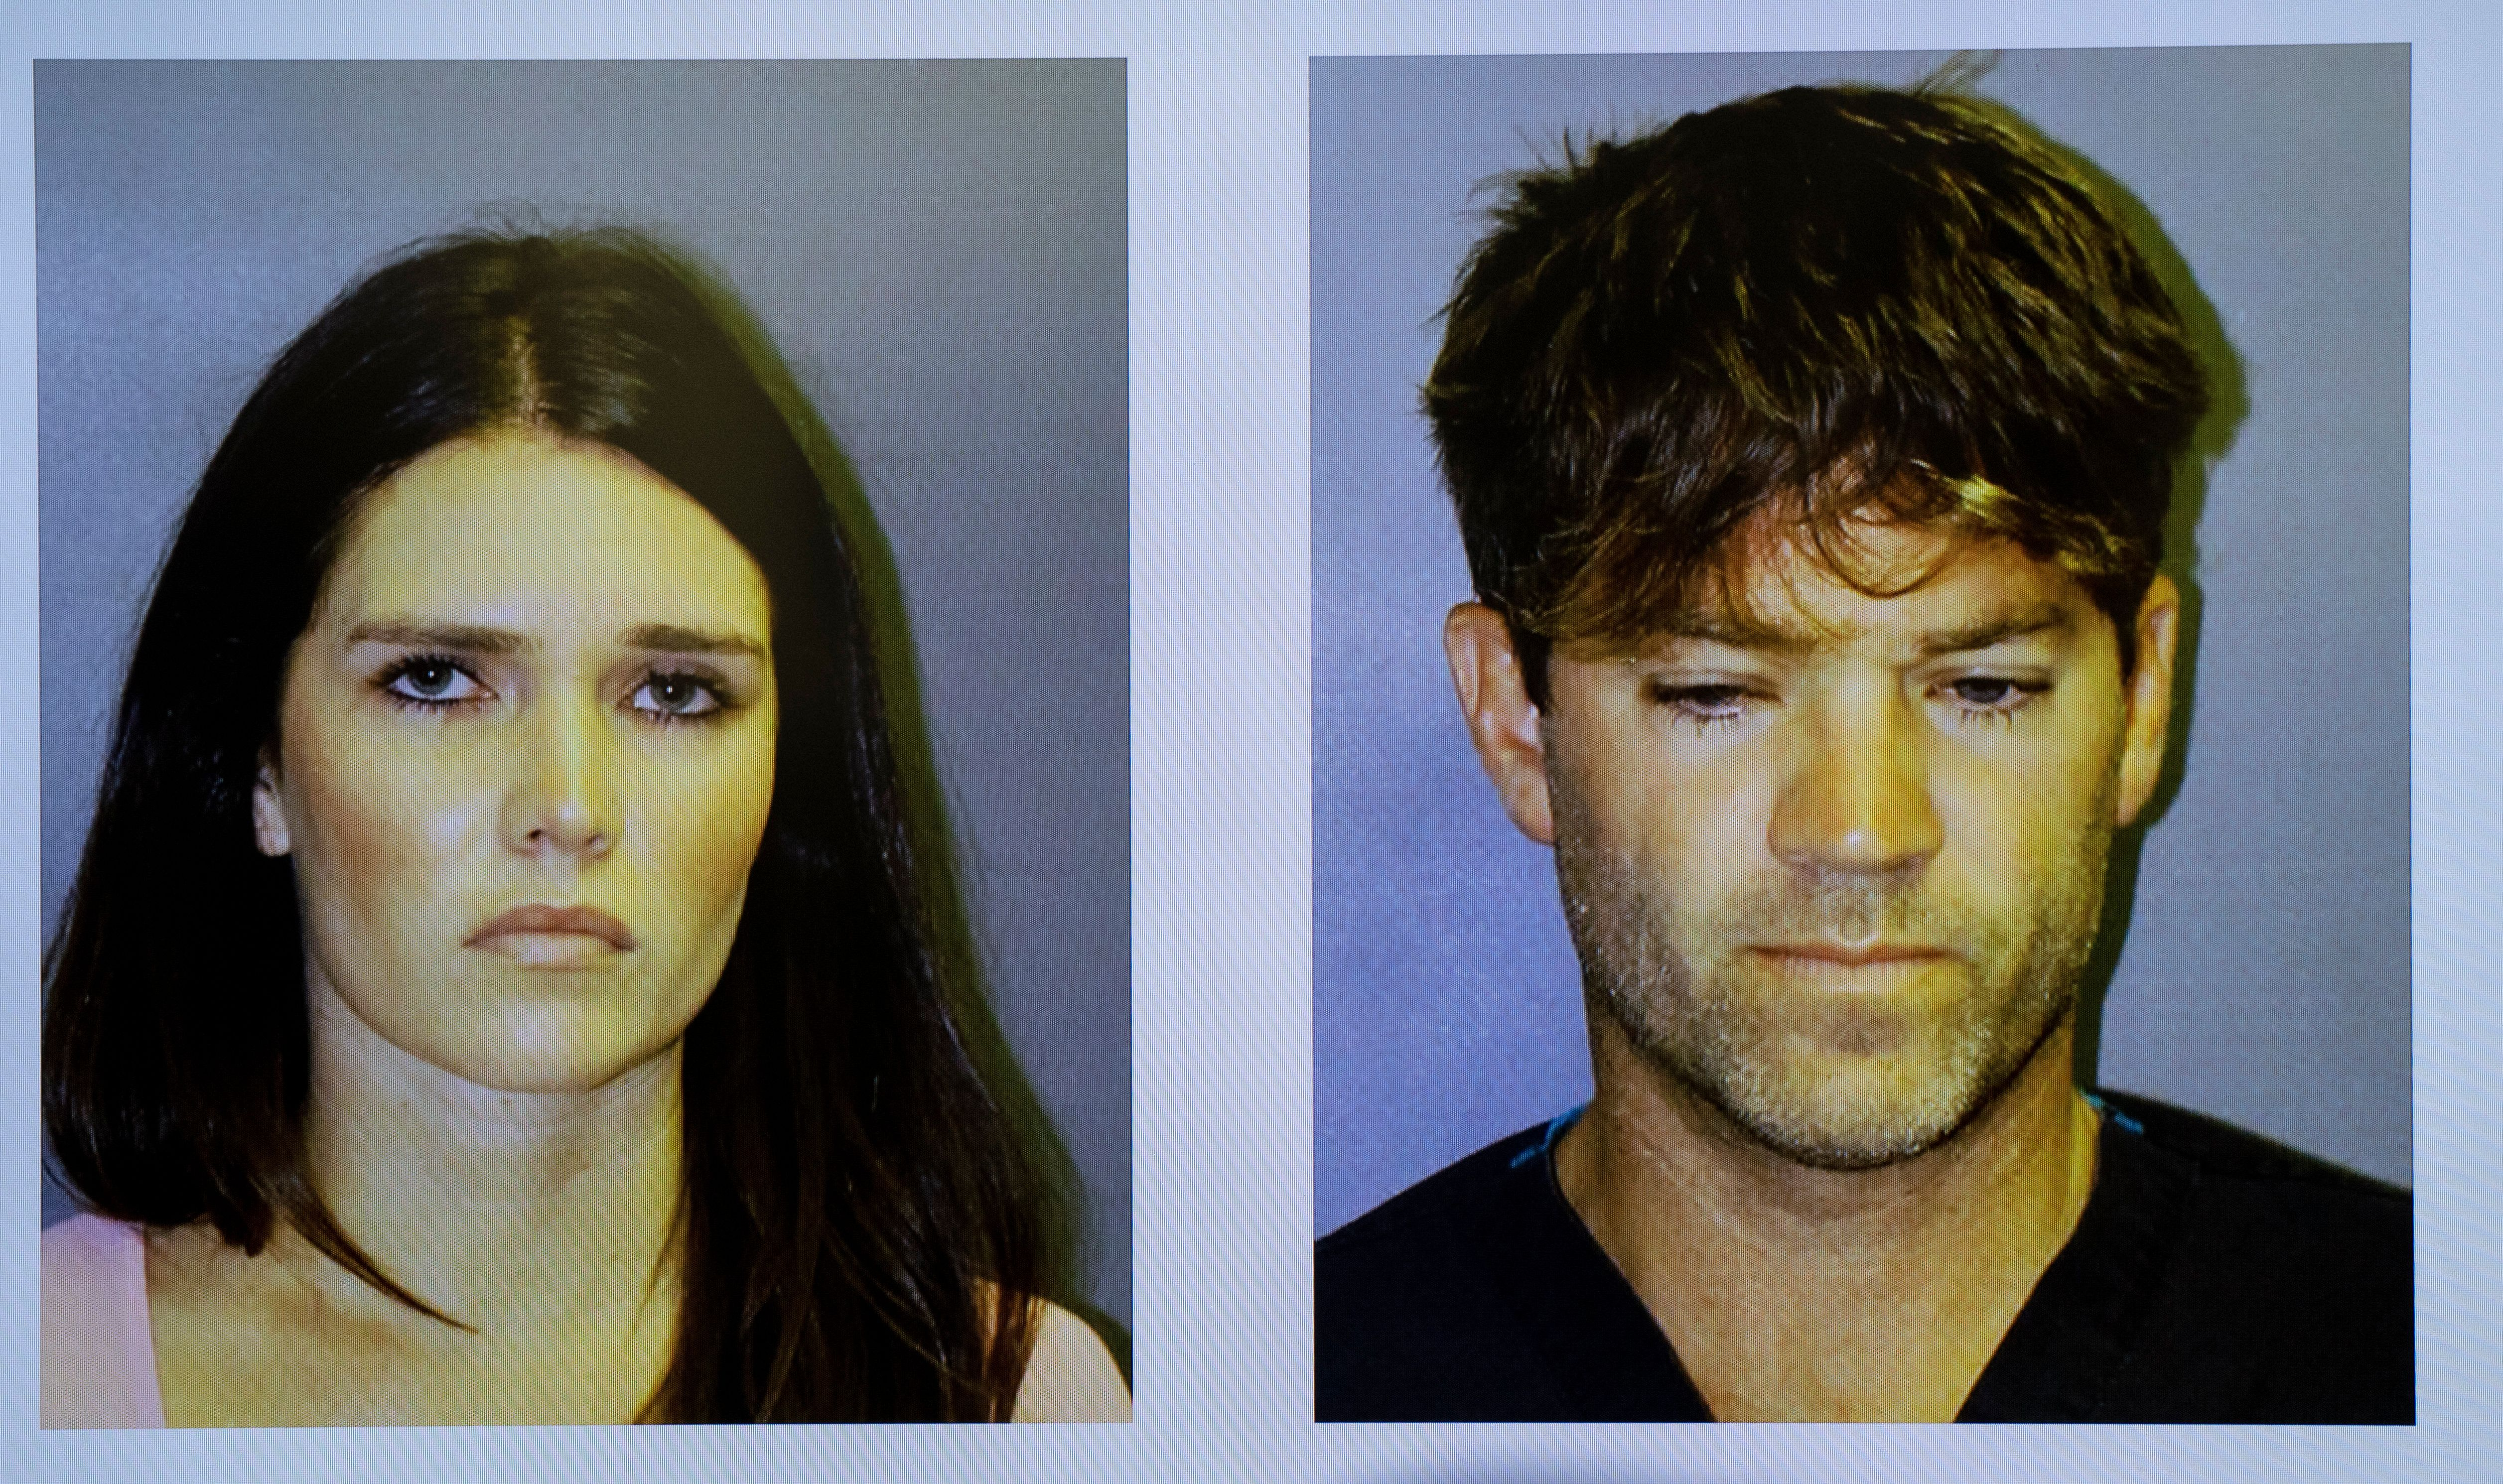 SANTA ANA, CA - SEPTEMBER 17: Booking mugs of Cerissa Laura Riley, 31, and surgeon Grant William Robicheaux, 38, are projected on a screen during a press conference in Santa Ana on Tuesday, September 18, 2018. The Orange County District Attorney announced that the couple is being charged with sexually assaulting two women by use of drugs and want other possible victims to come forward  (Photo by Mindy Schauer/Digital First Media/Orange County Register via Getty Images)